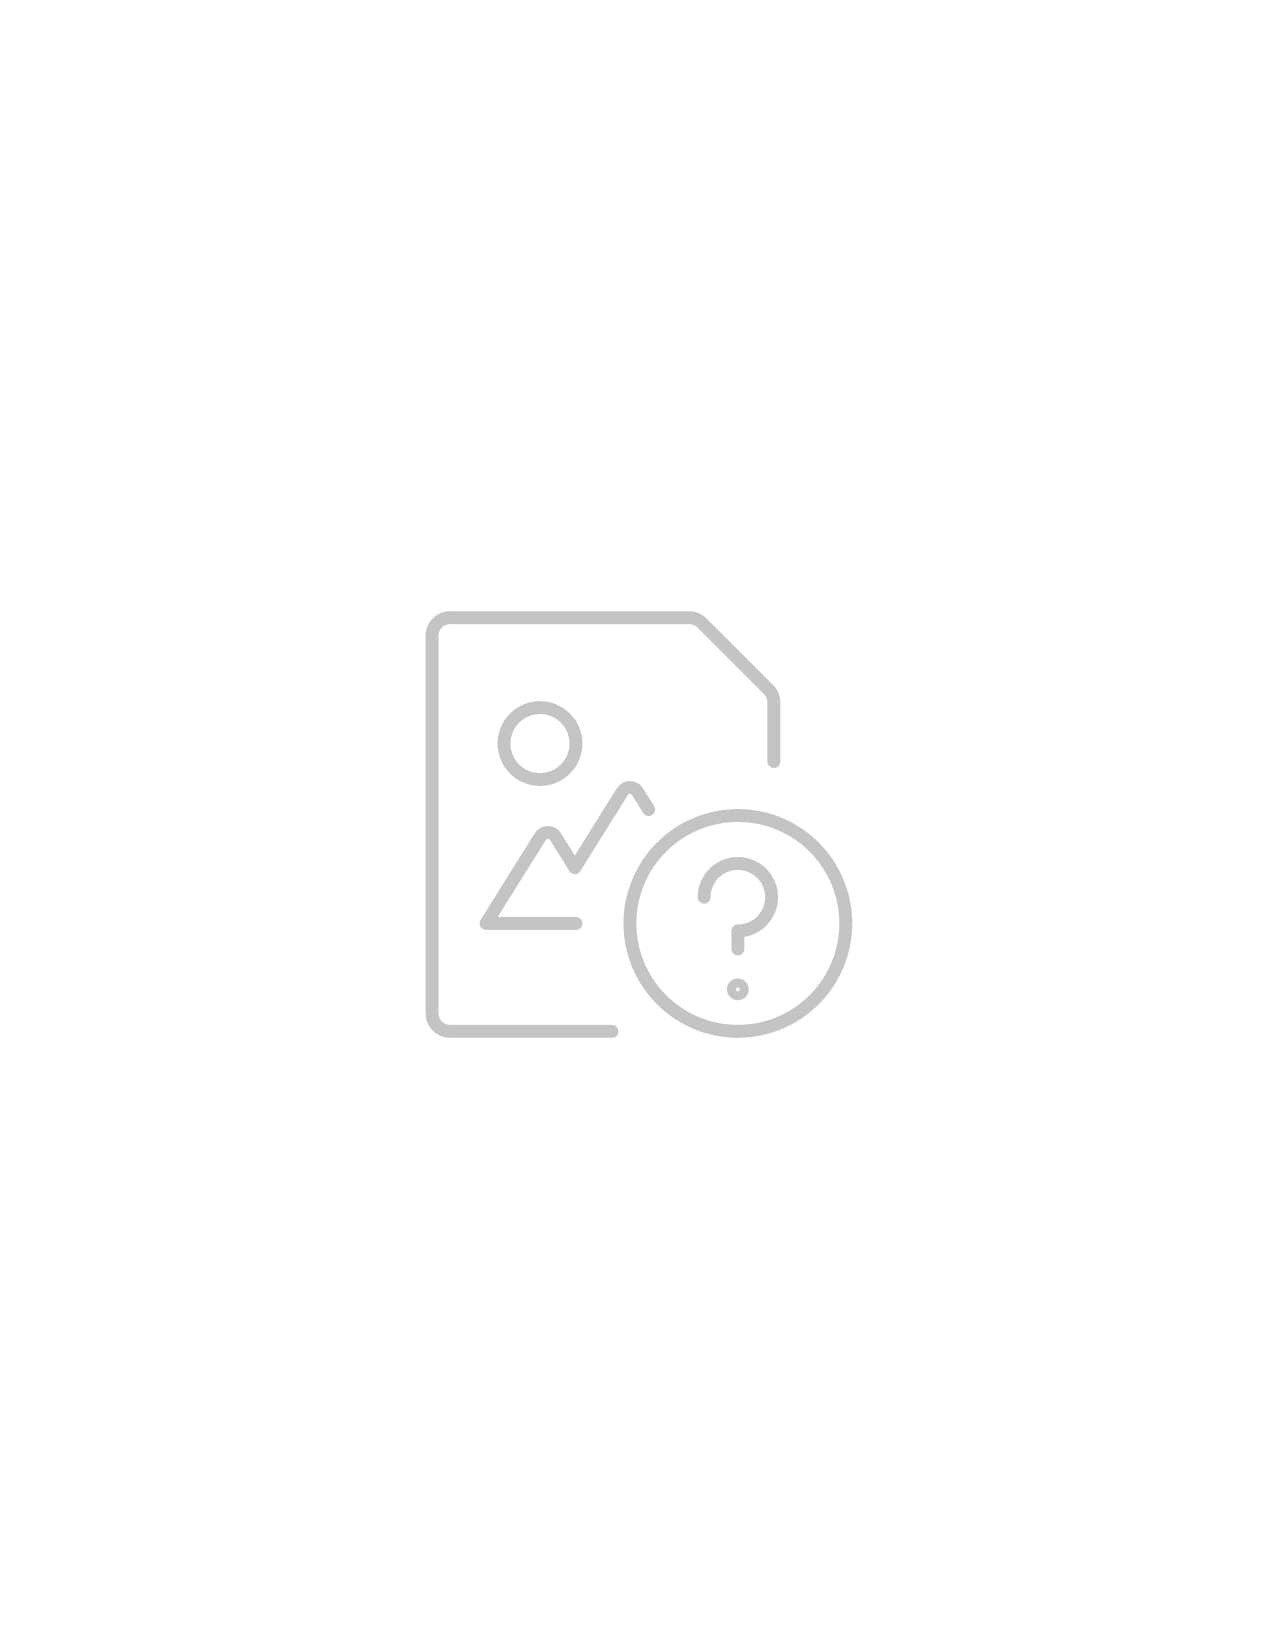 Ackley World Journal, January 14, 1932, p. 4